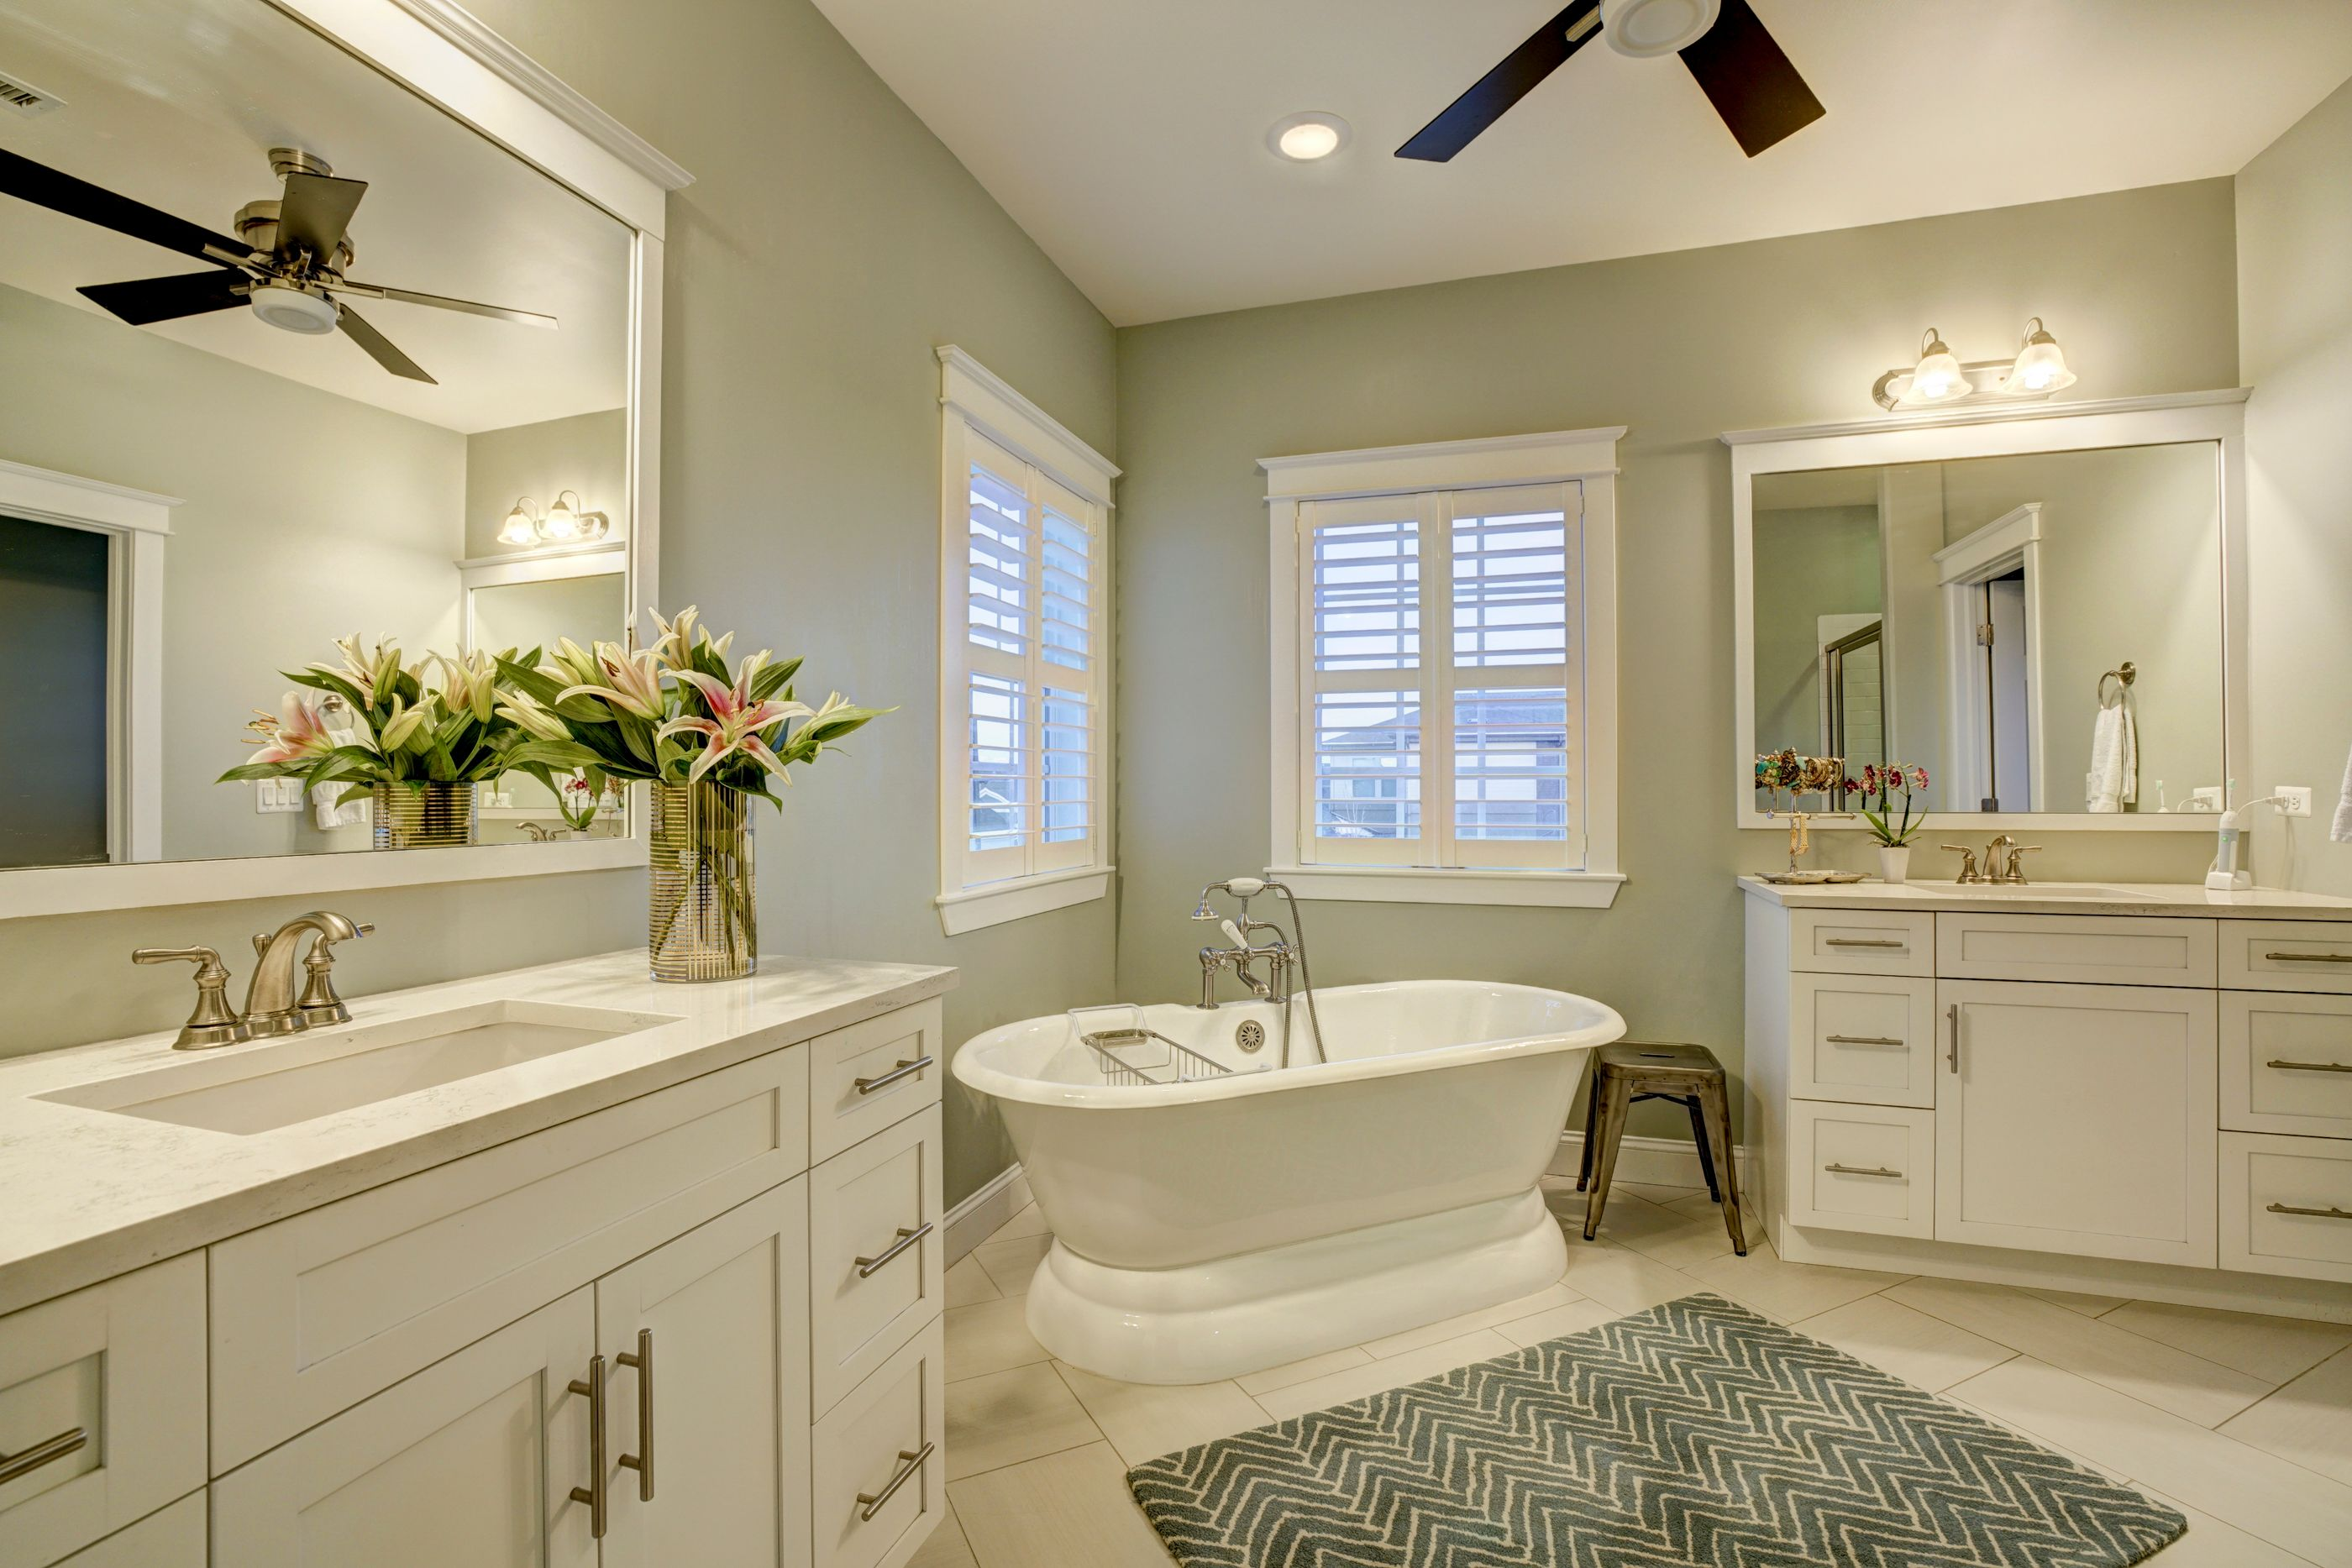 Bathroom featured in The Chestertown - Shenandoah Collection By Parkwood Homes in Denver, CO